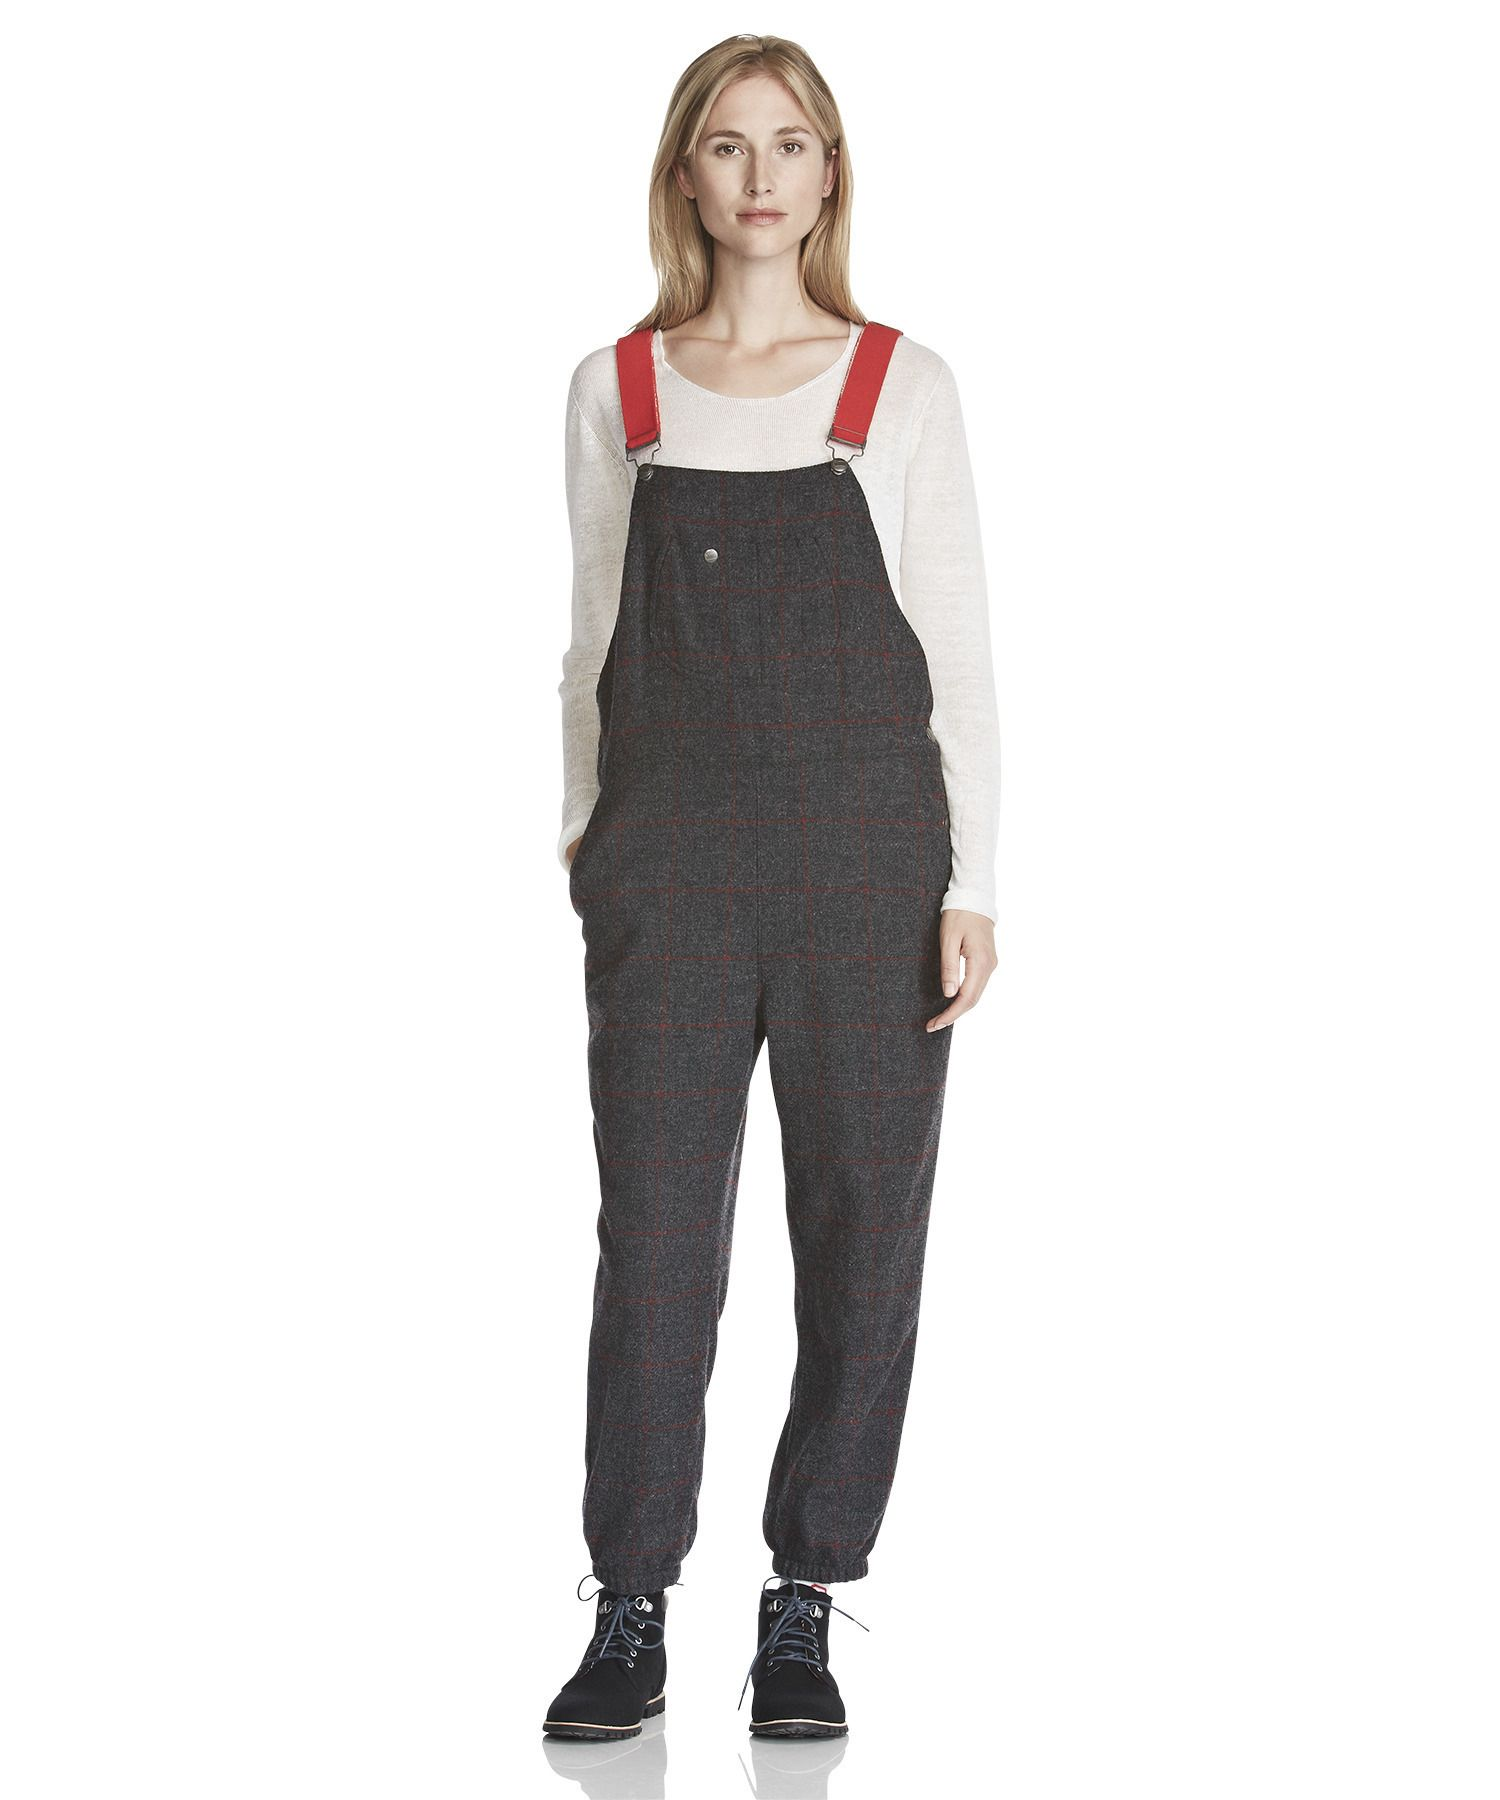 2f8e2a8f81a9 Women s Ms. Malone Wool Bib Overalls by WOOLRICH® The Original Outdoor  Clothing Company